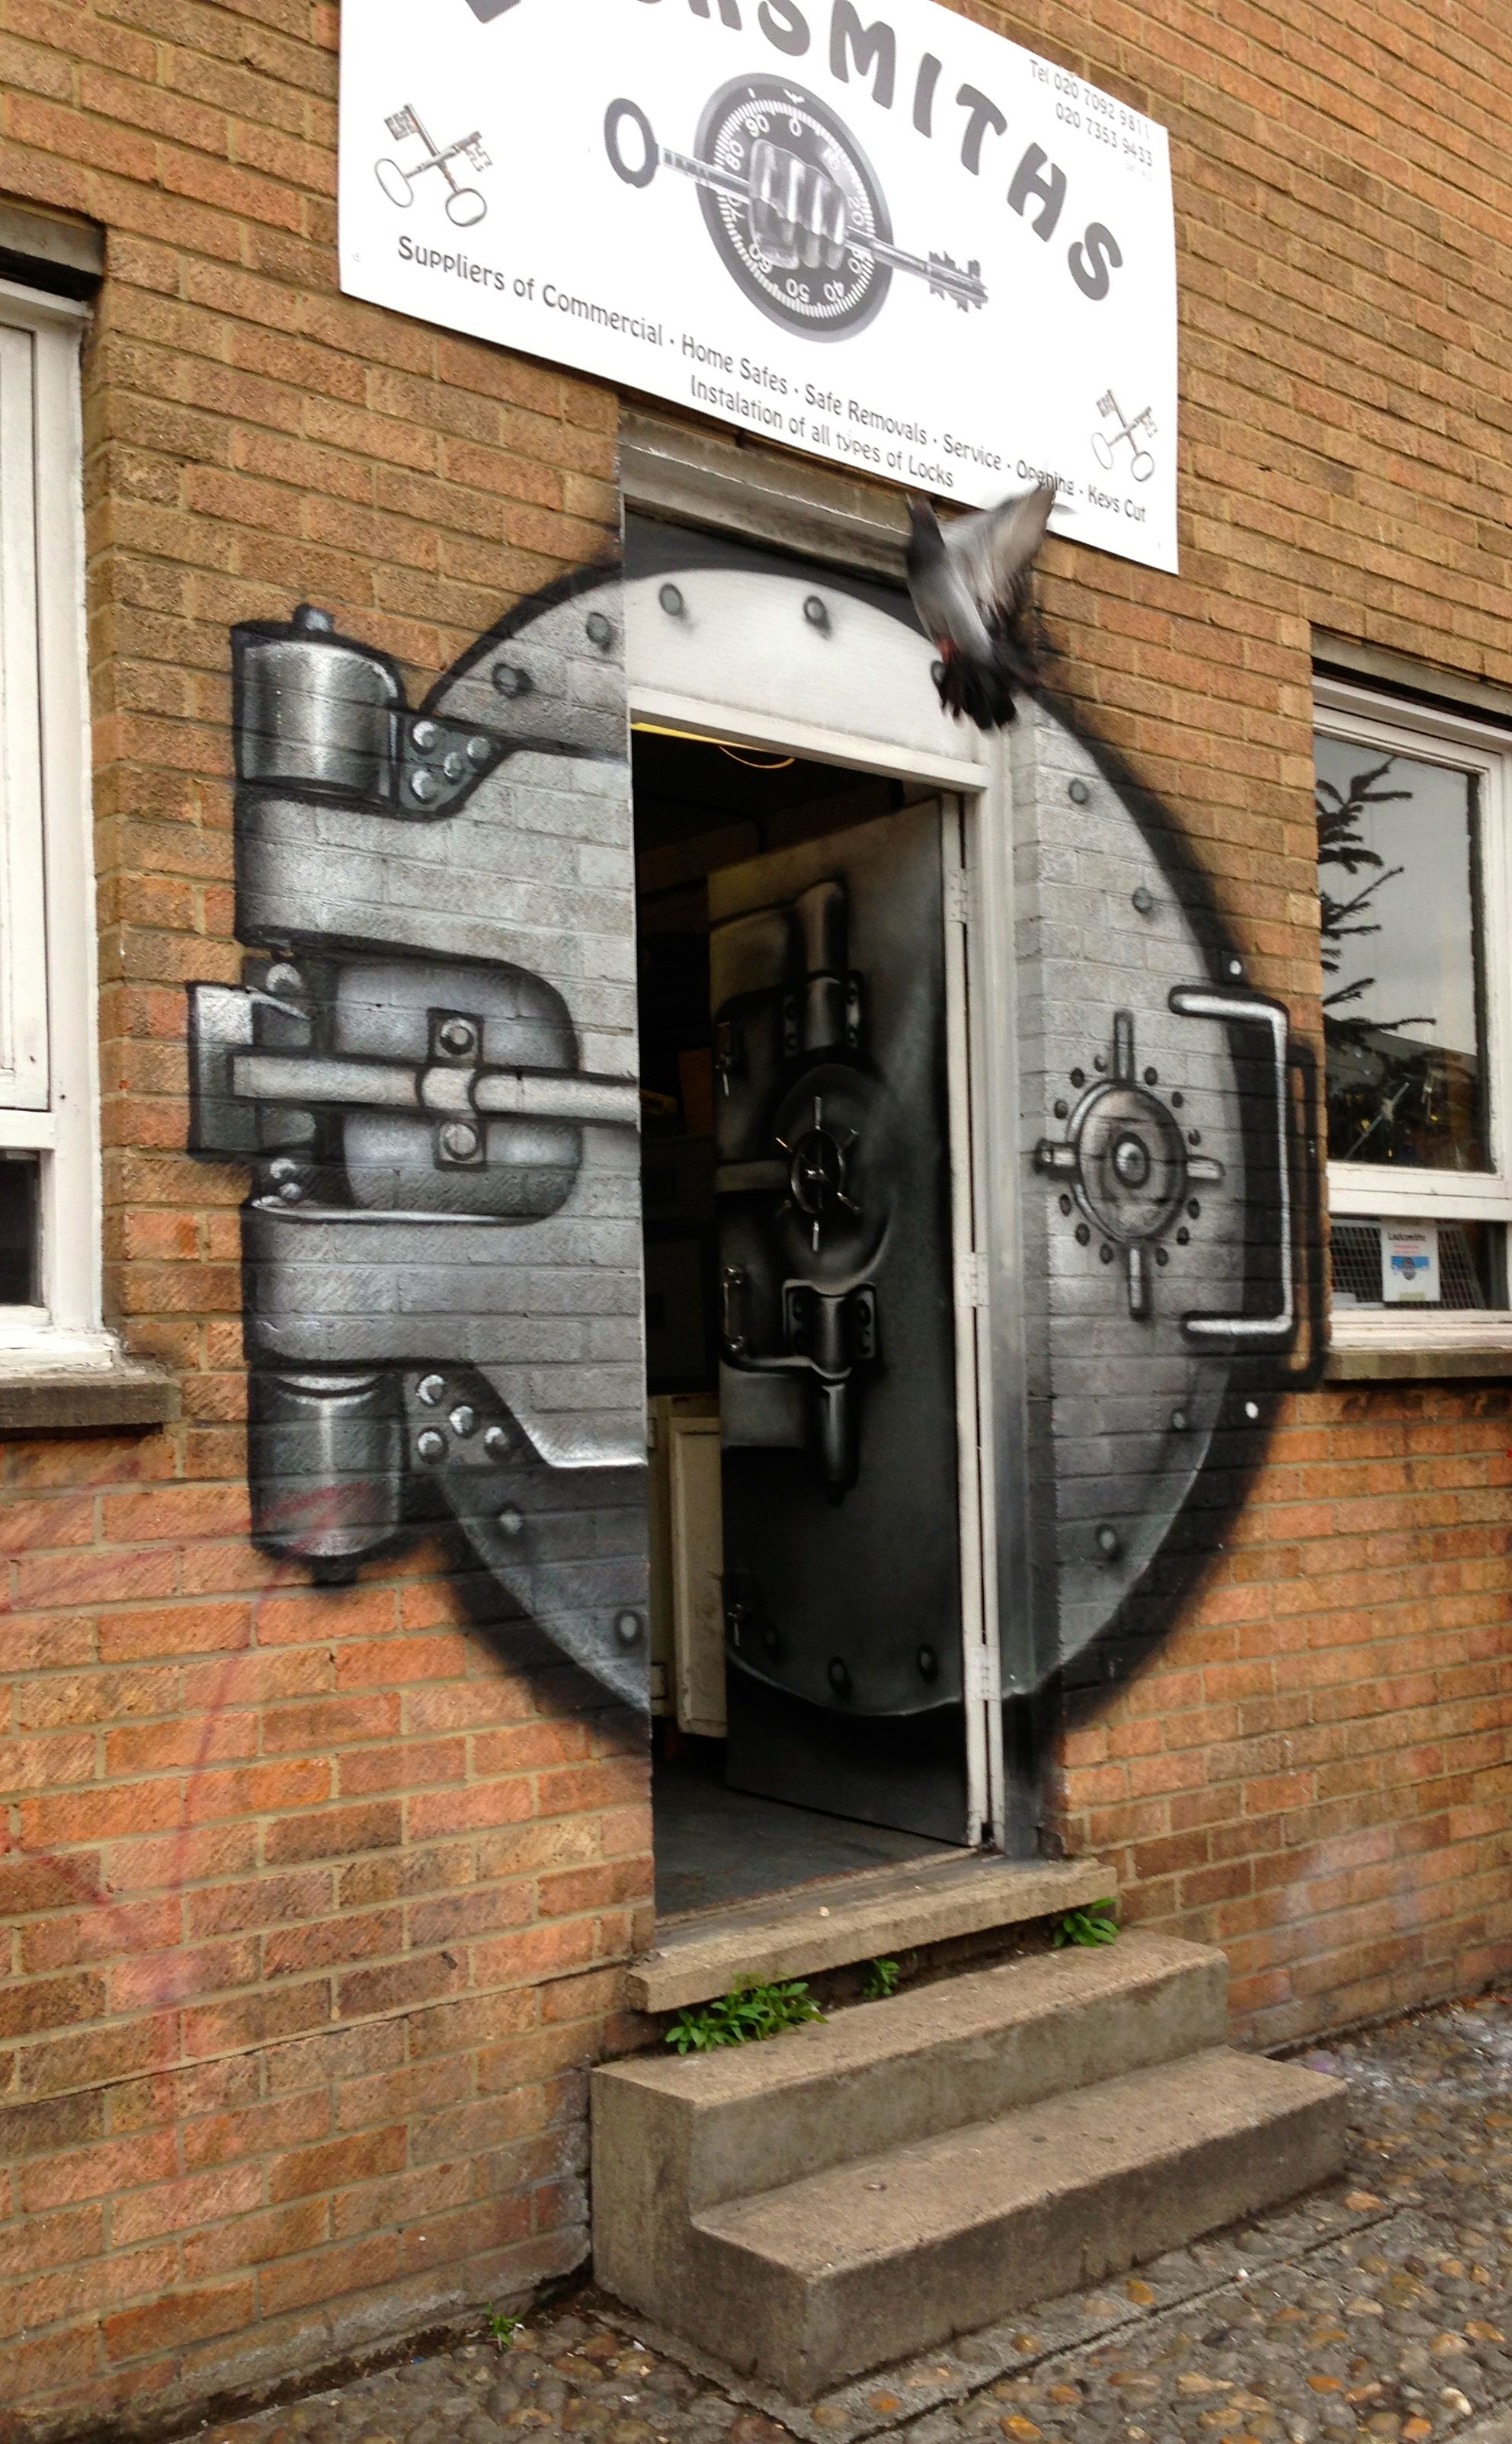 Locksmith storefront mural in in Shoreditch, London | Street art, Mural, Store decor